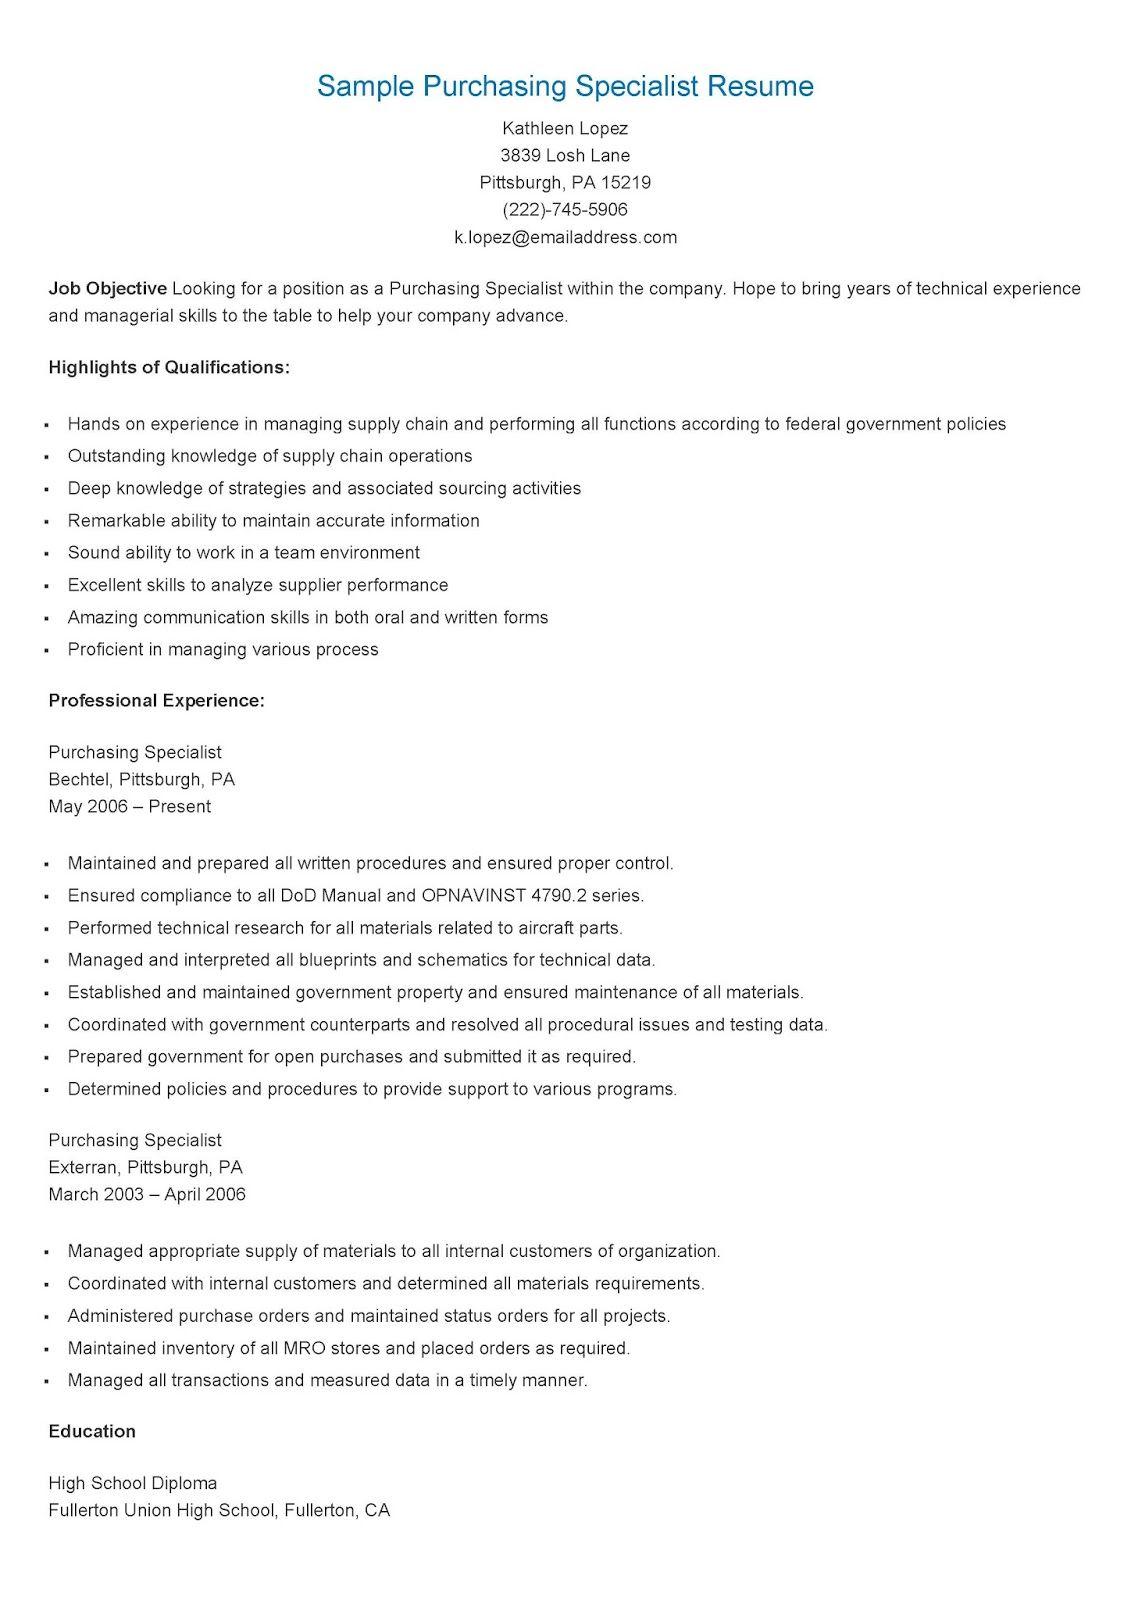 Sample Purchasing Specialist Resume With Images Job Resume